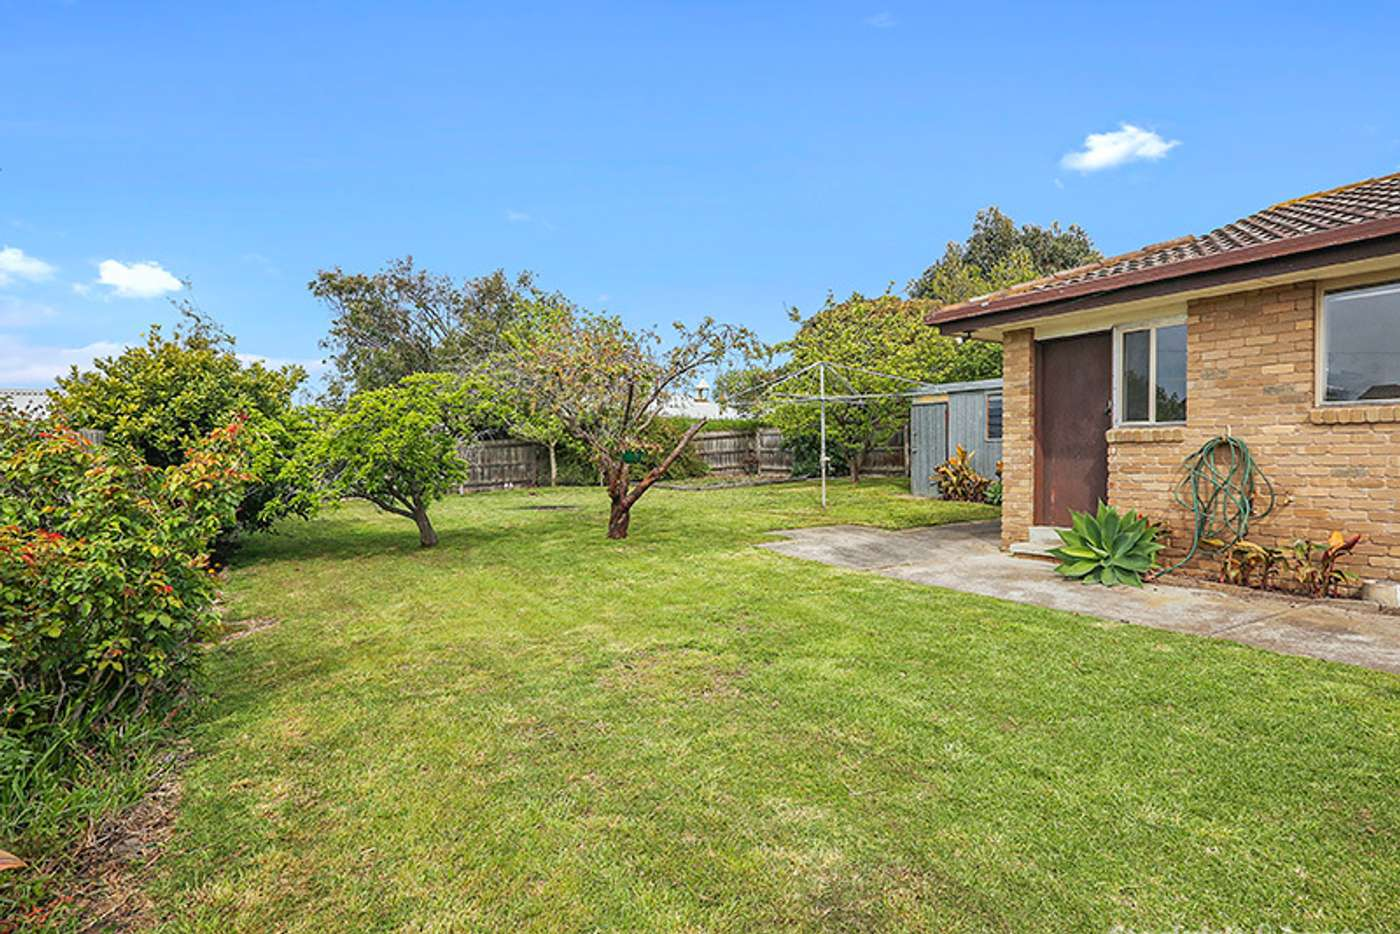 Seventh view of Homely house listing, 39 Gwyther Road, Highton VIC 3216